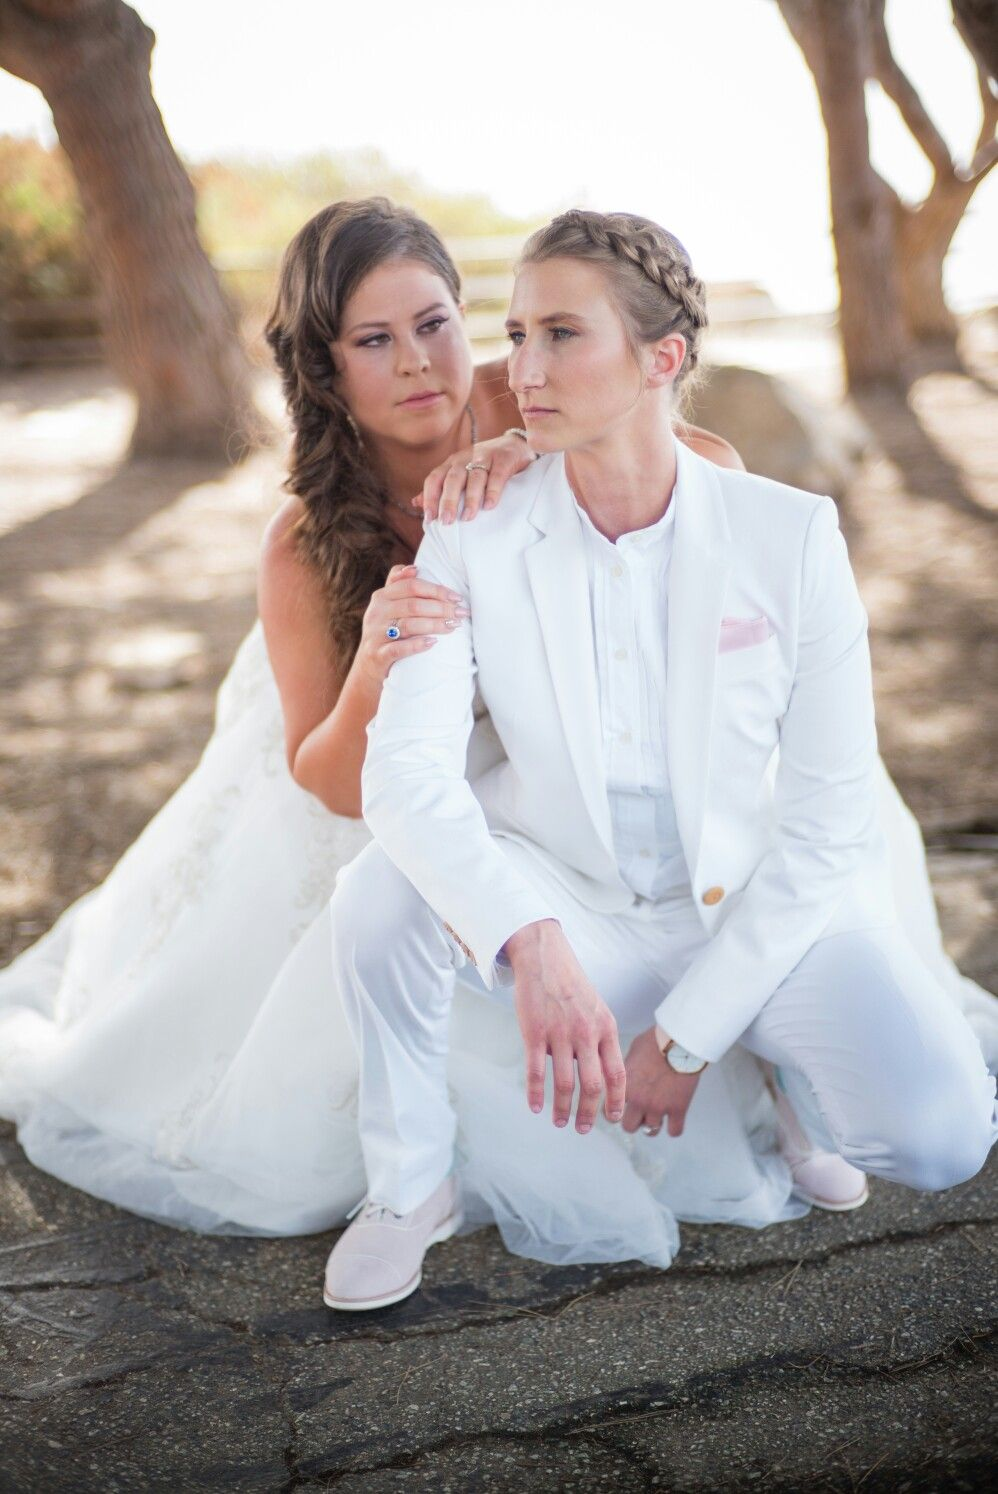 a5ed3955a Beautiful lesbian wedding fitted suit | Wedding Ideas in 2019 ...